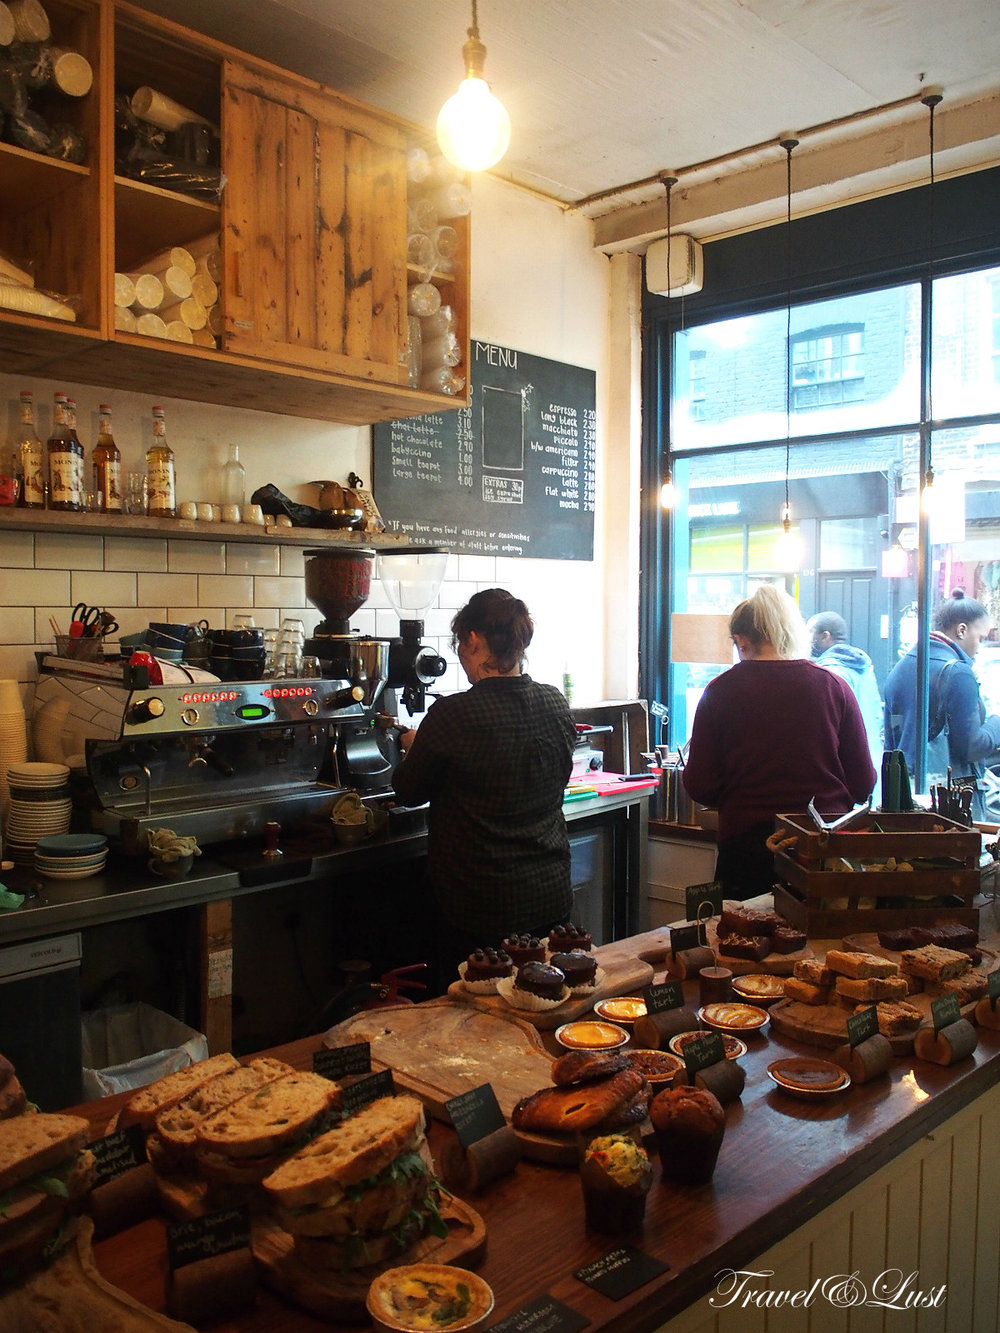 Kahaila has the best velvet cake and latte in Bricklane. This spot is a local nonprofit cafe on Brick Lane. All profits go to support local community projects and other charitable causes.Bricklane 135,E1 6SB.